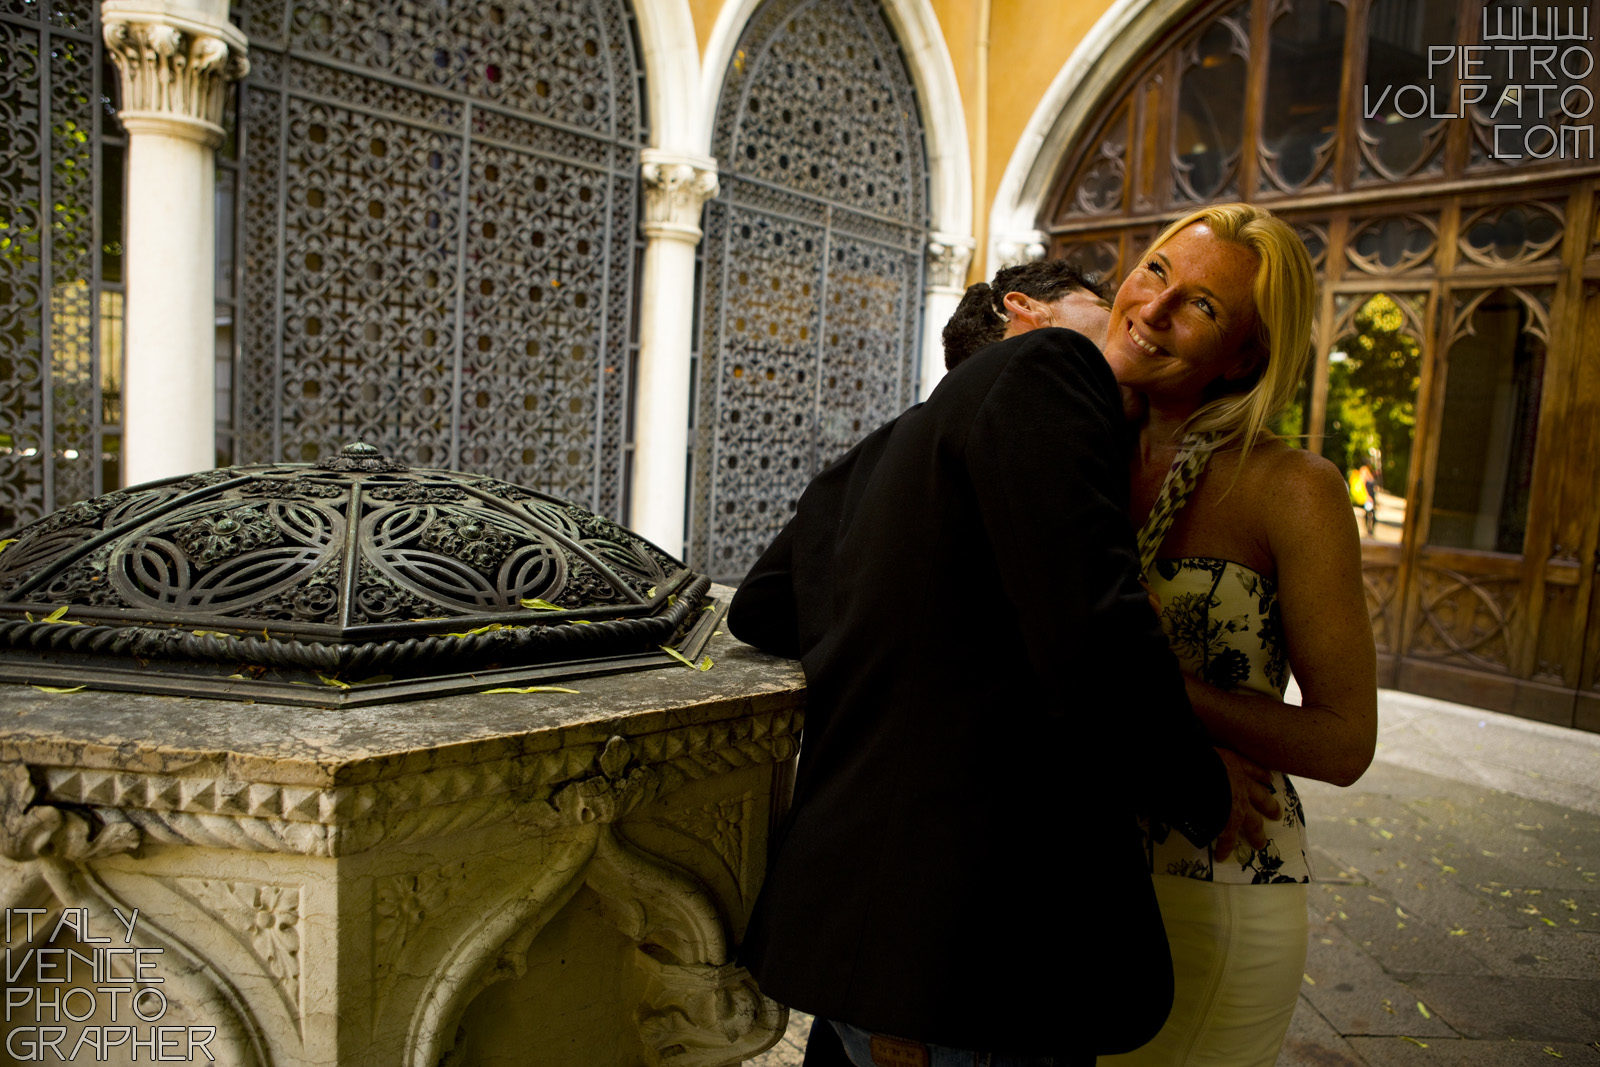 Photographer for hire in Venice. Vacation photo shoot in Venice during a romantic fun walking tour.